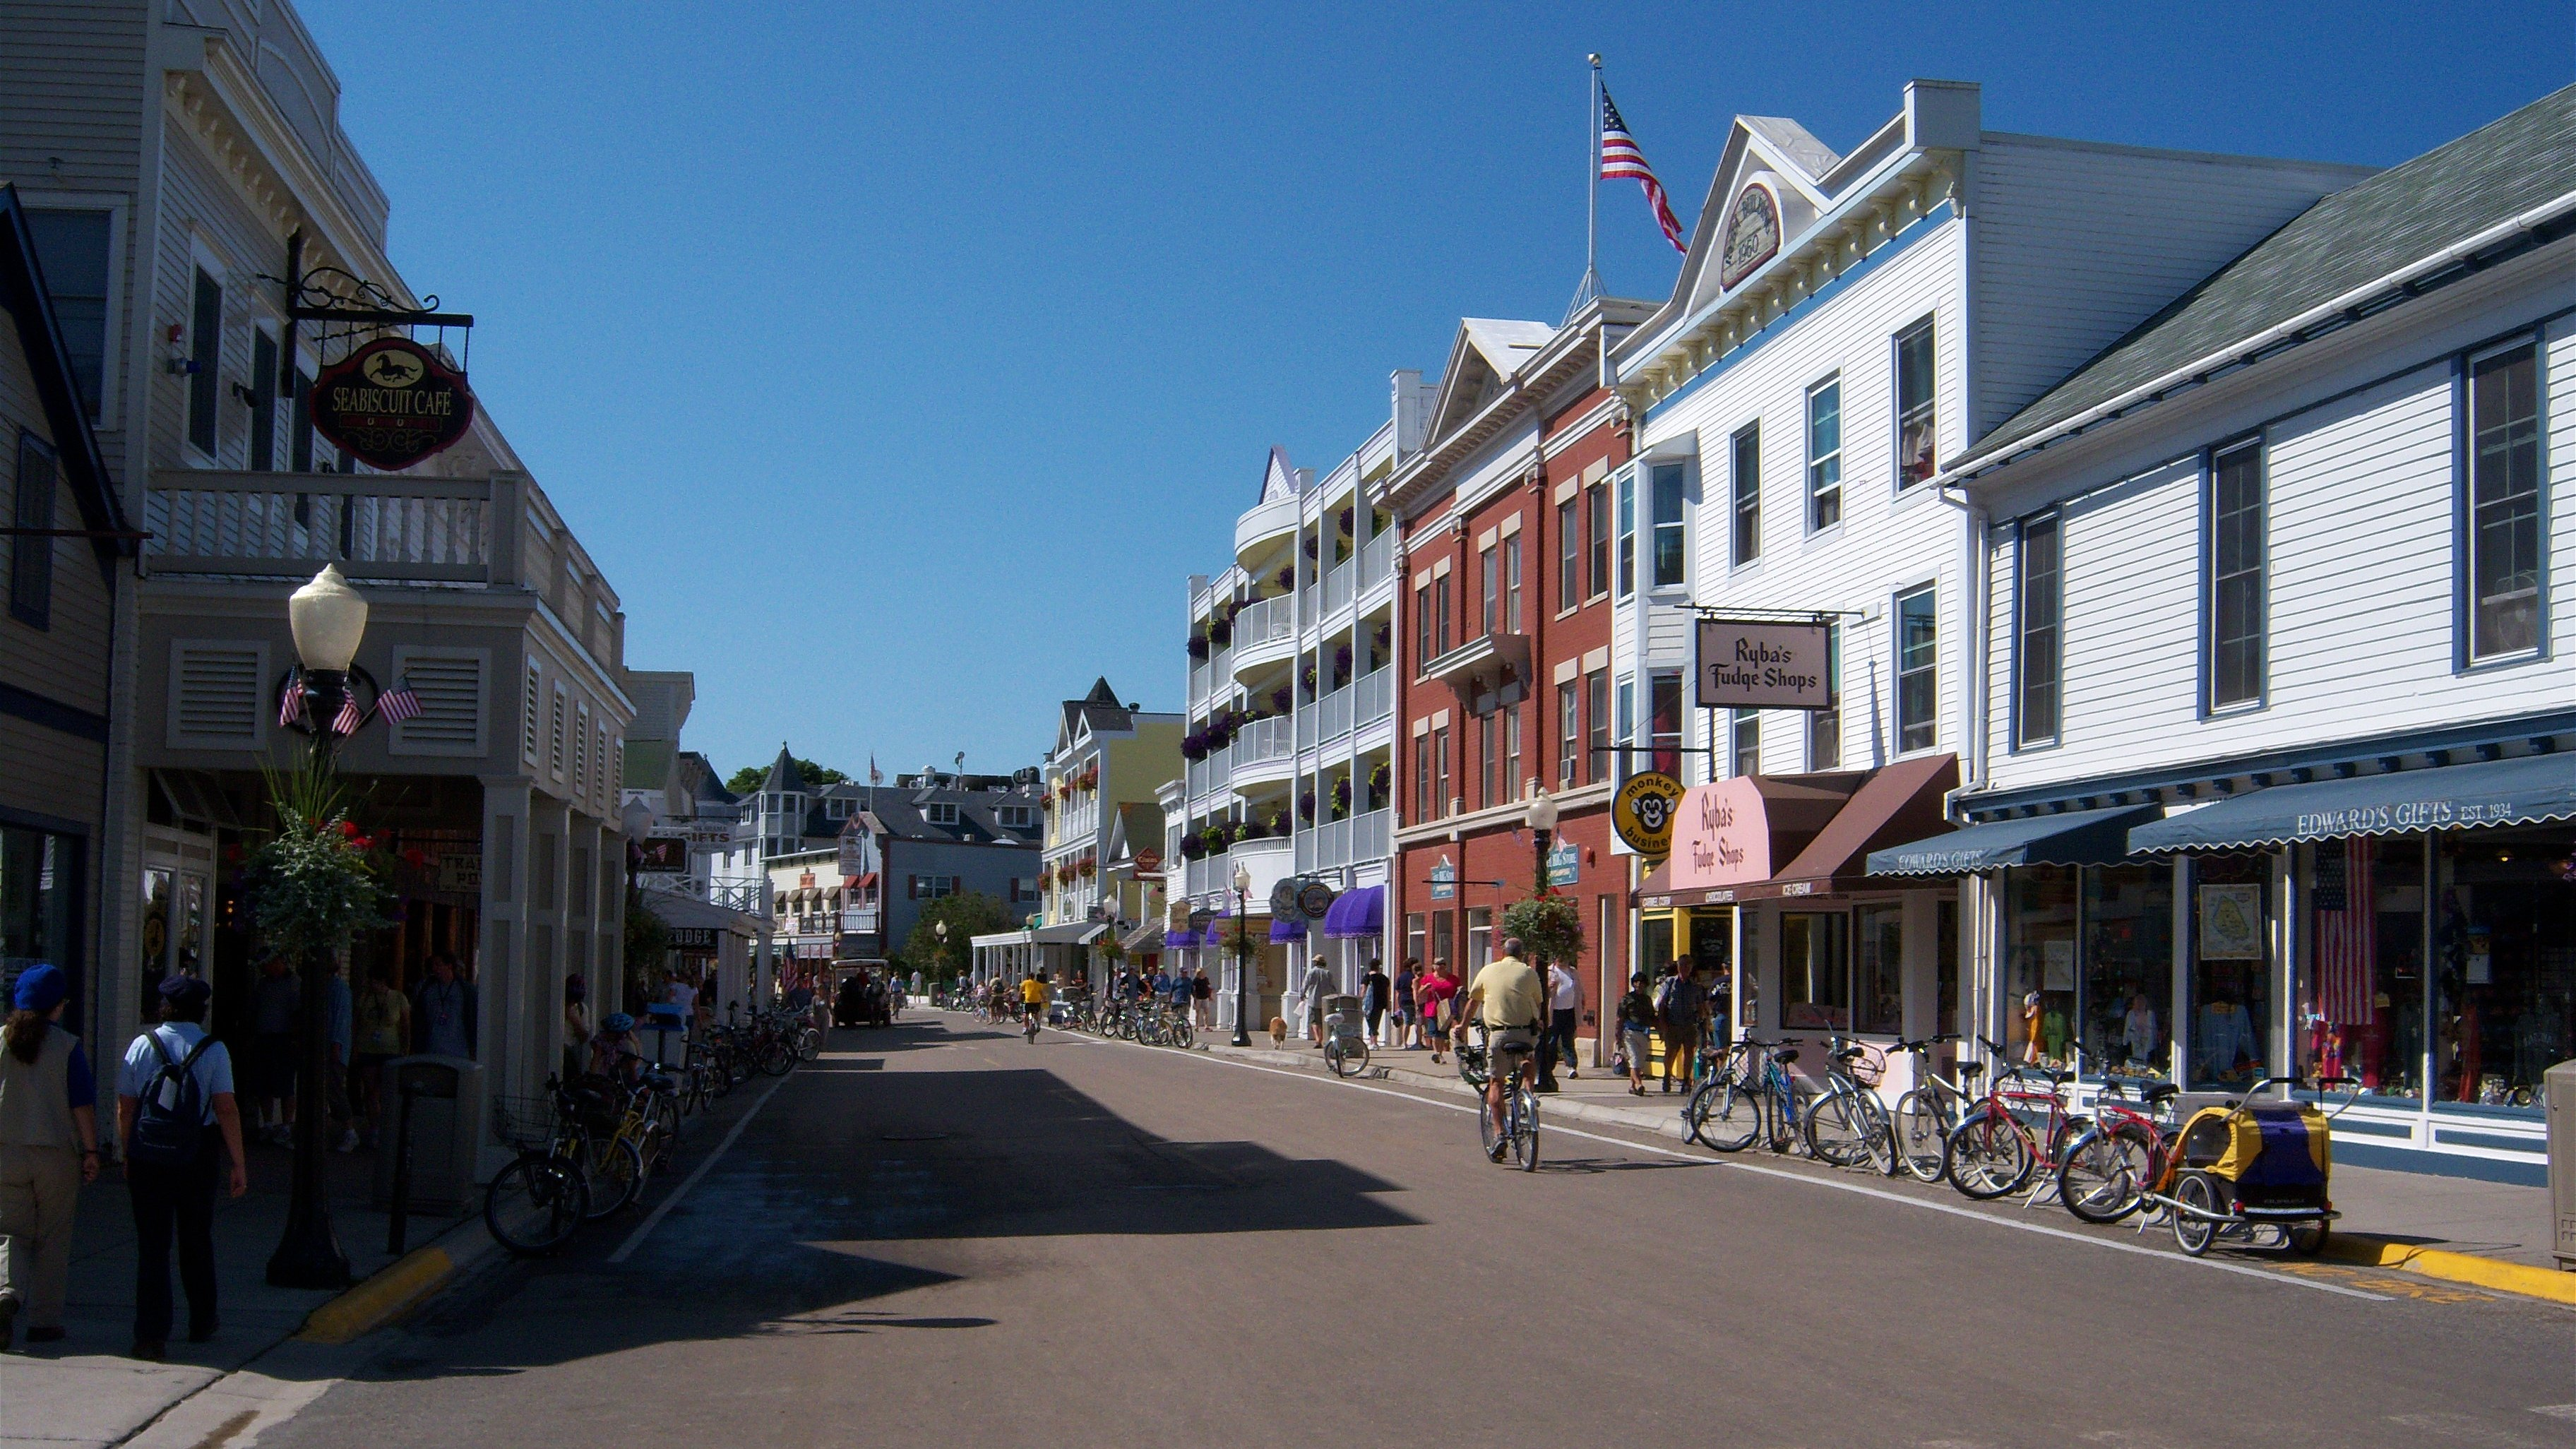 Is There A Mackinac Island In New York